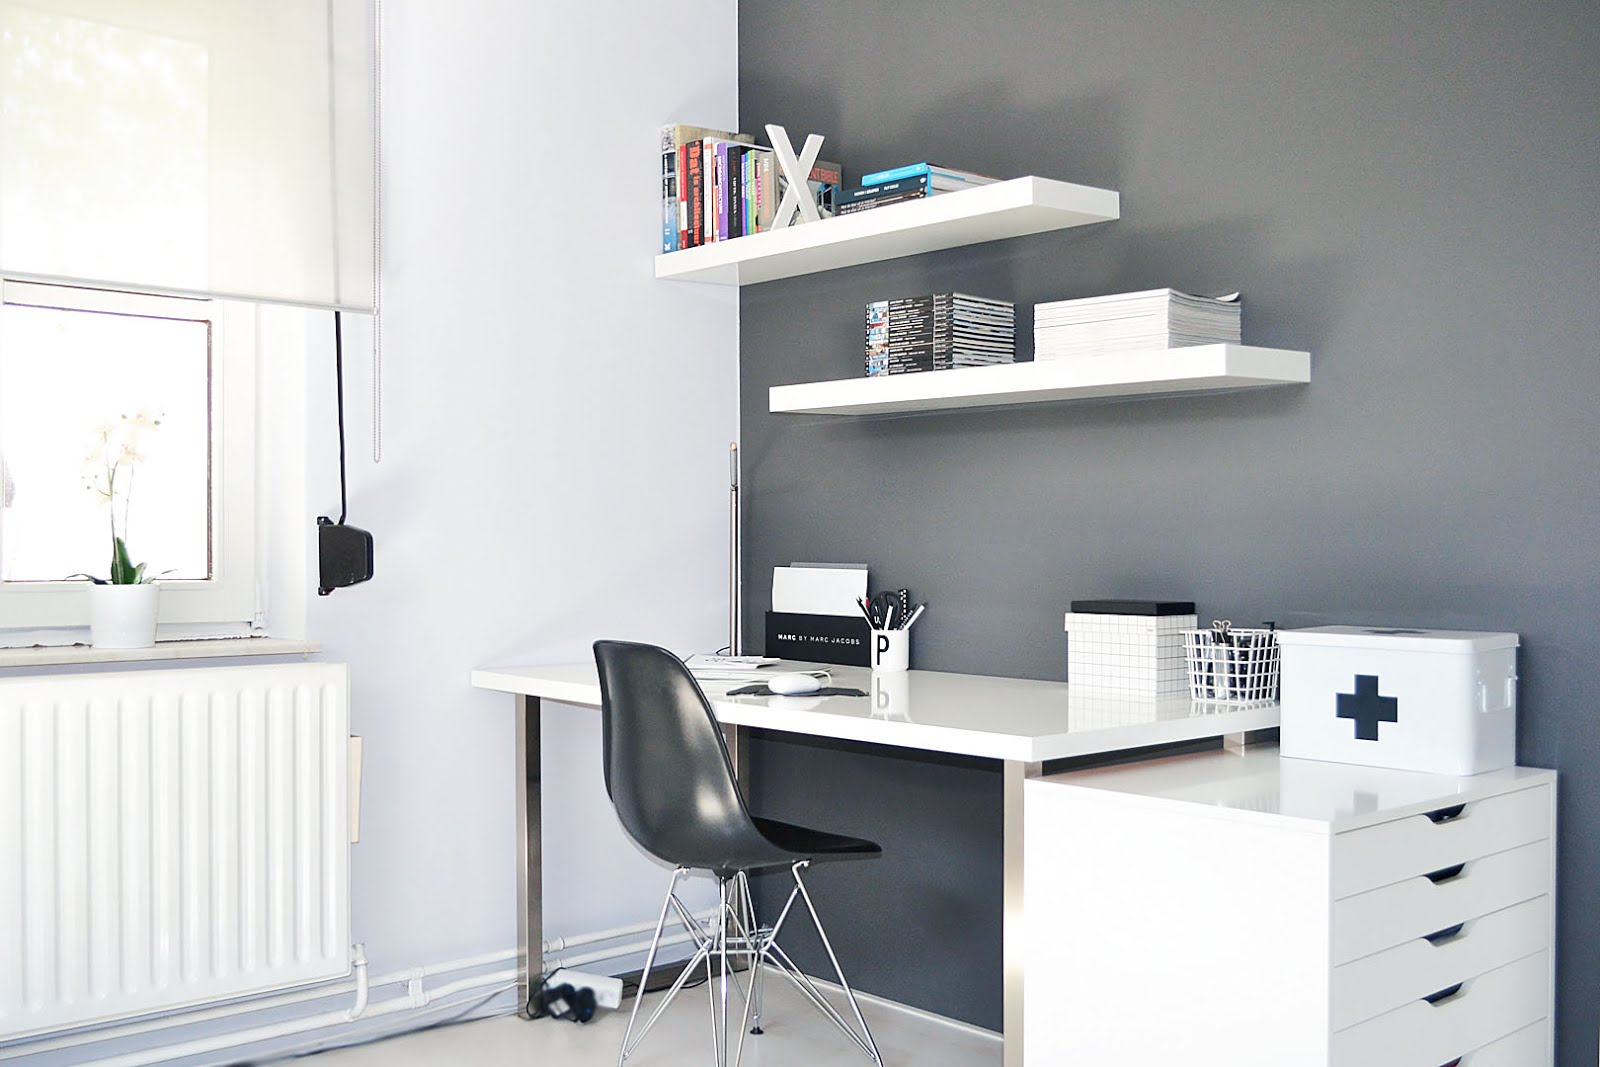 Minimal workspace, ikea alex, vitra dsx chair, charles ray eames, marc by marc jacobs, arne jacobsen letter cup, pencils, hay boxes, vogue collection, interior design, fashion blogger, belgische modeblogger